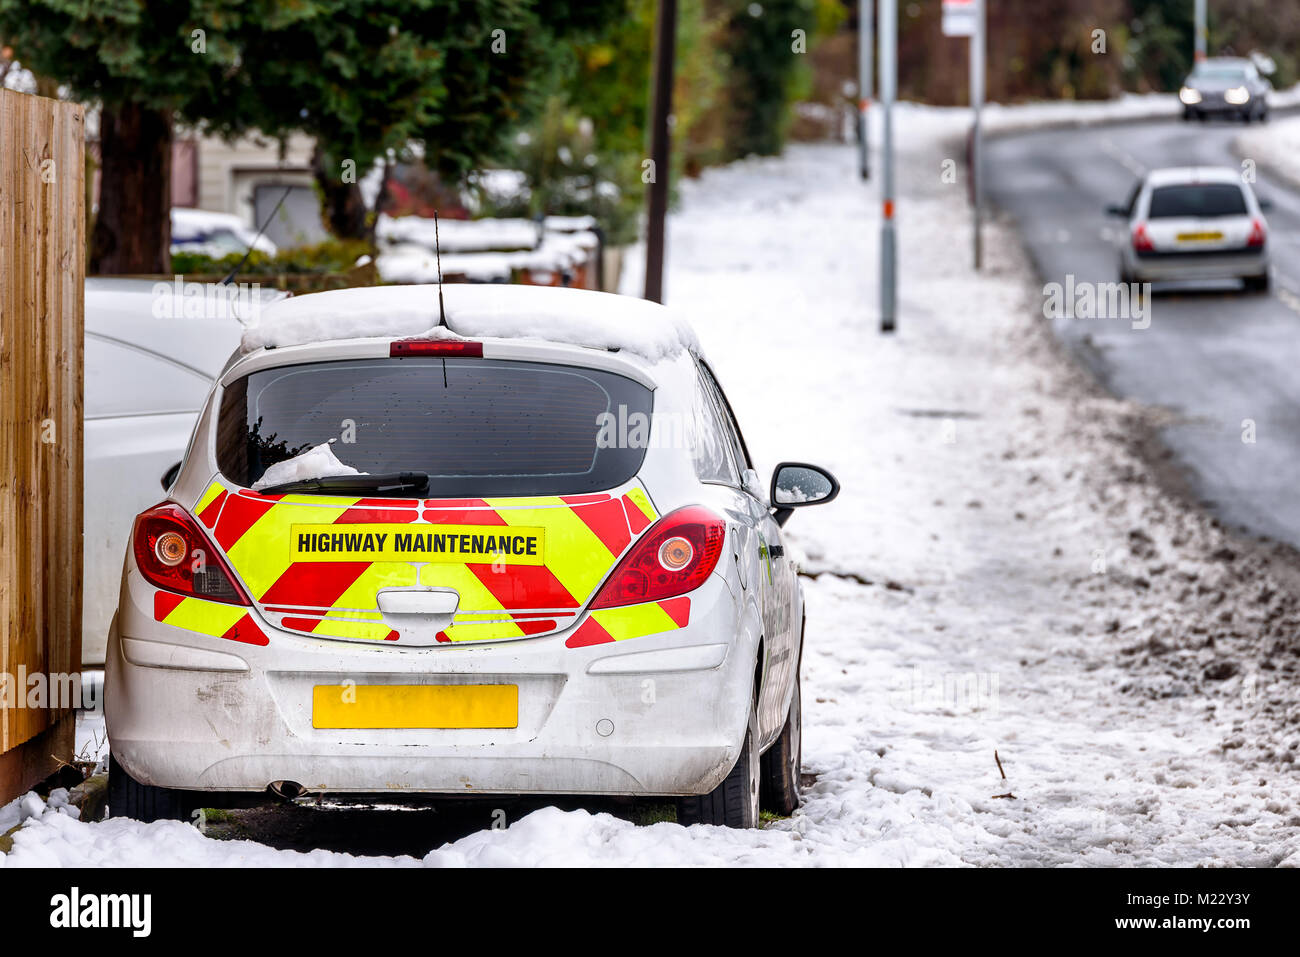 Day view UK Motorway Highway Maintenance car parked on snowy road Stock Photo